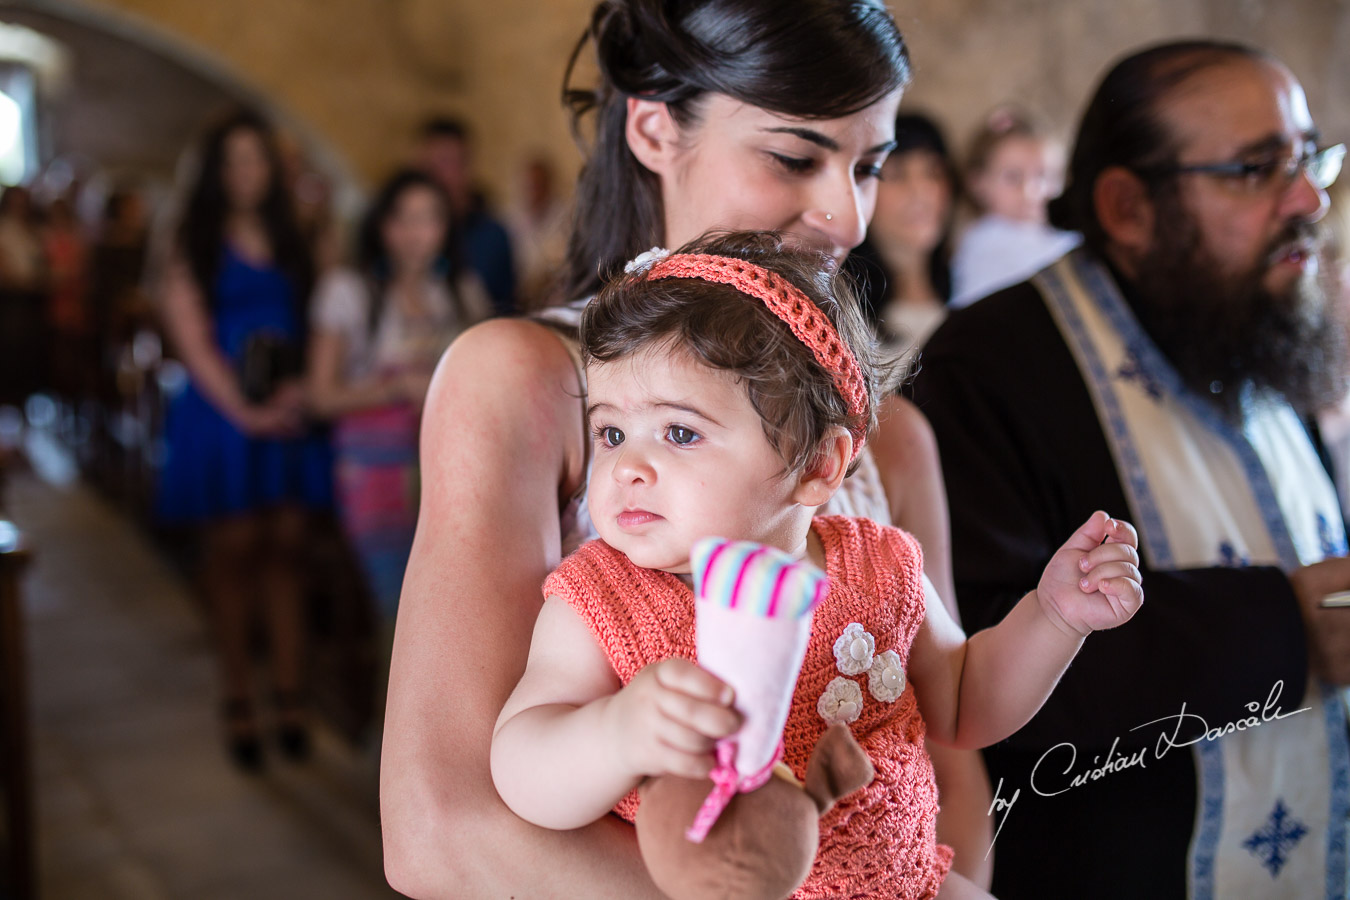 Joyous Christening in Limassol - 20